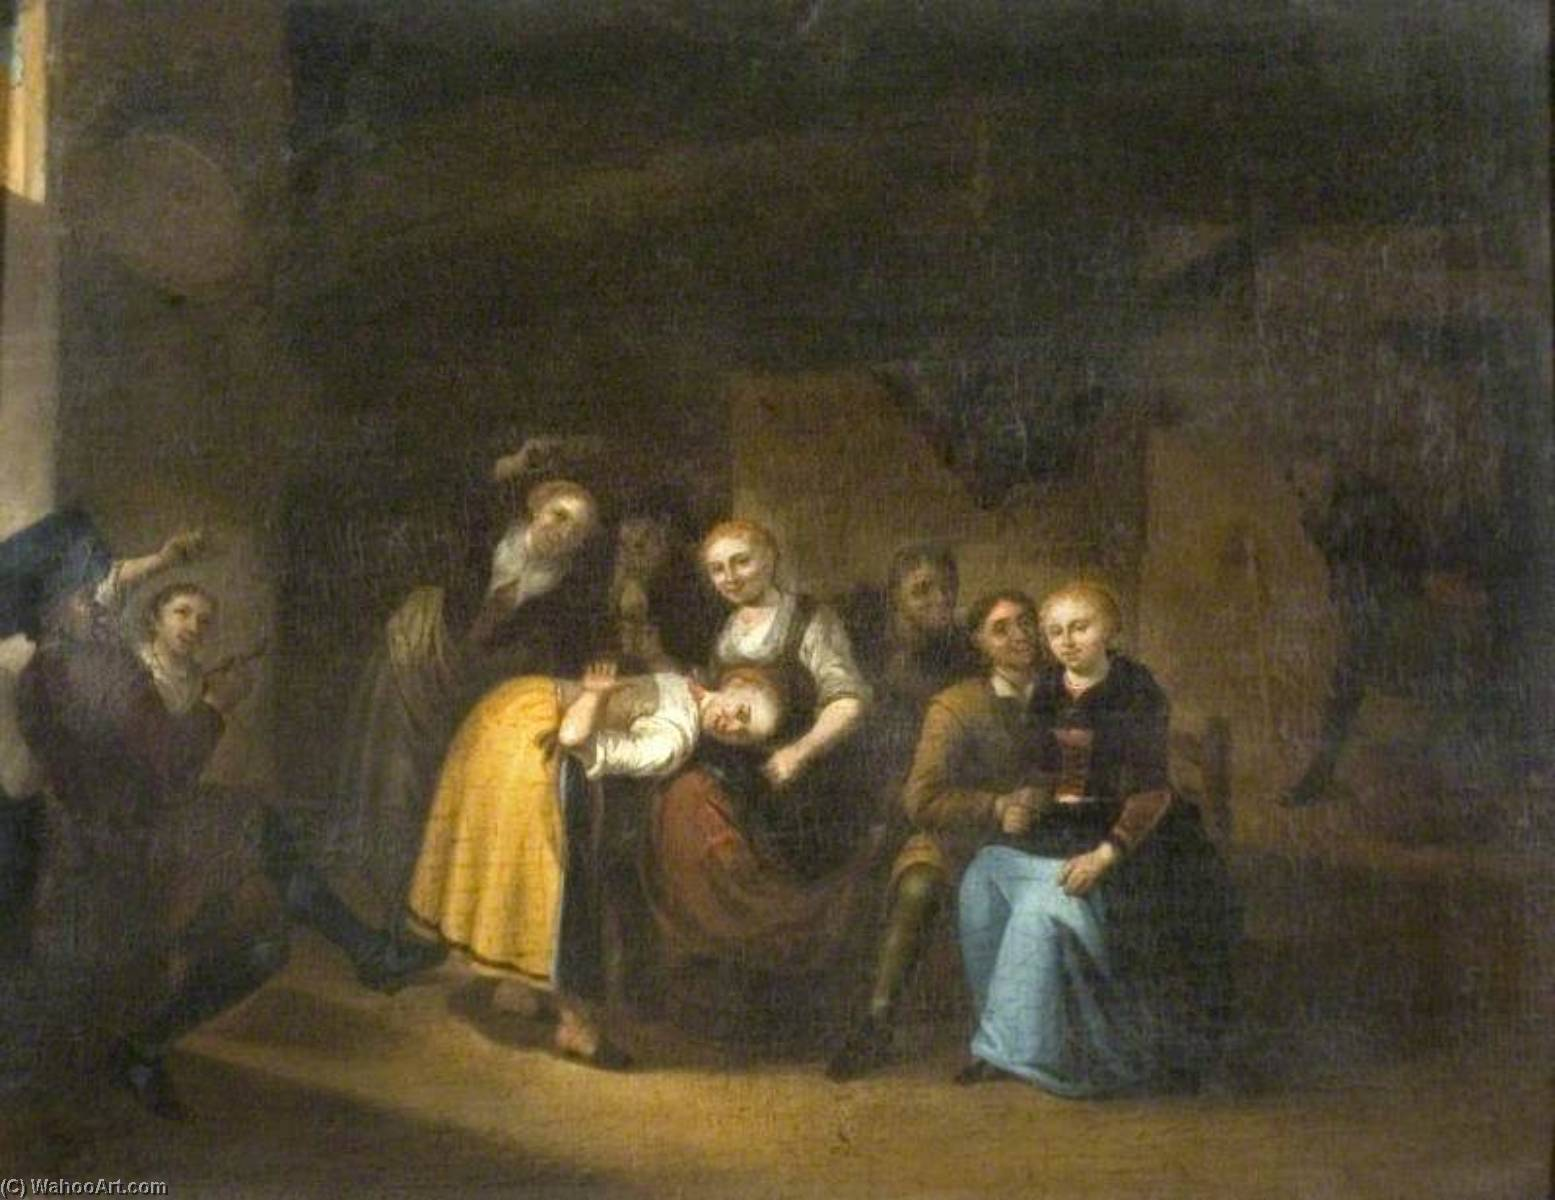 'La main chaude', Dutch Party Playing Games in an Interior, Oil On Panel by Gerrit Lundens (1622-1686)